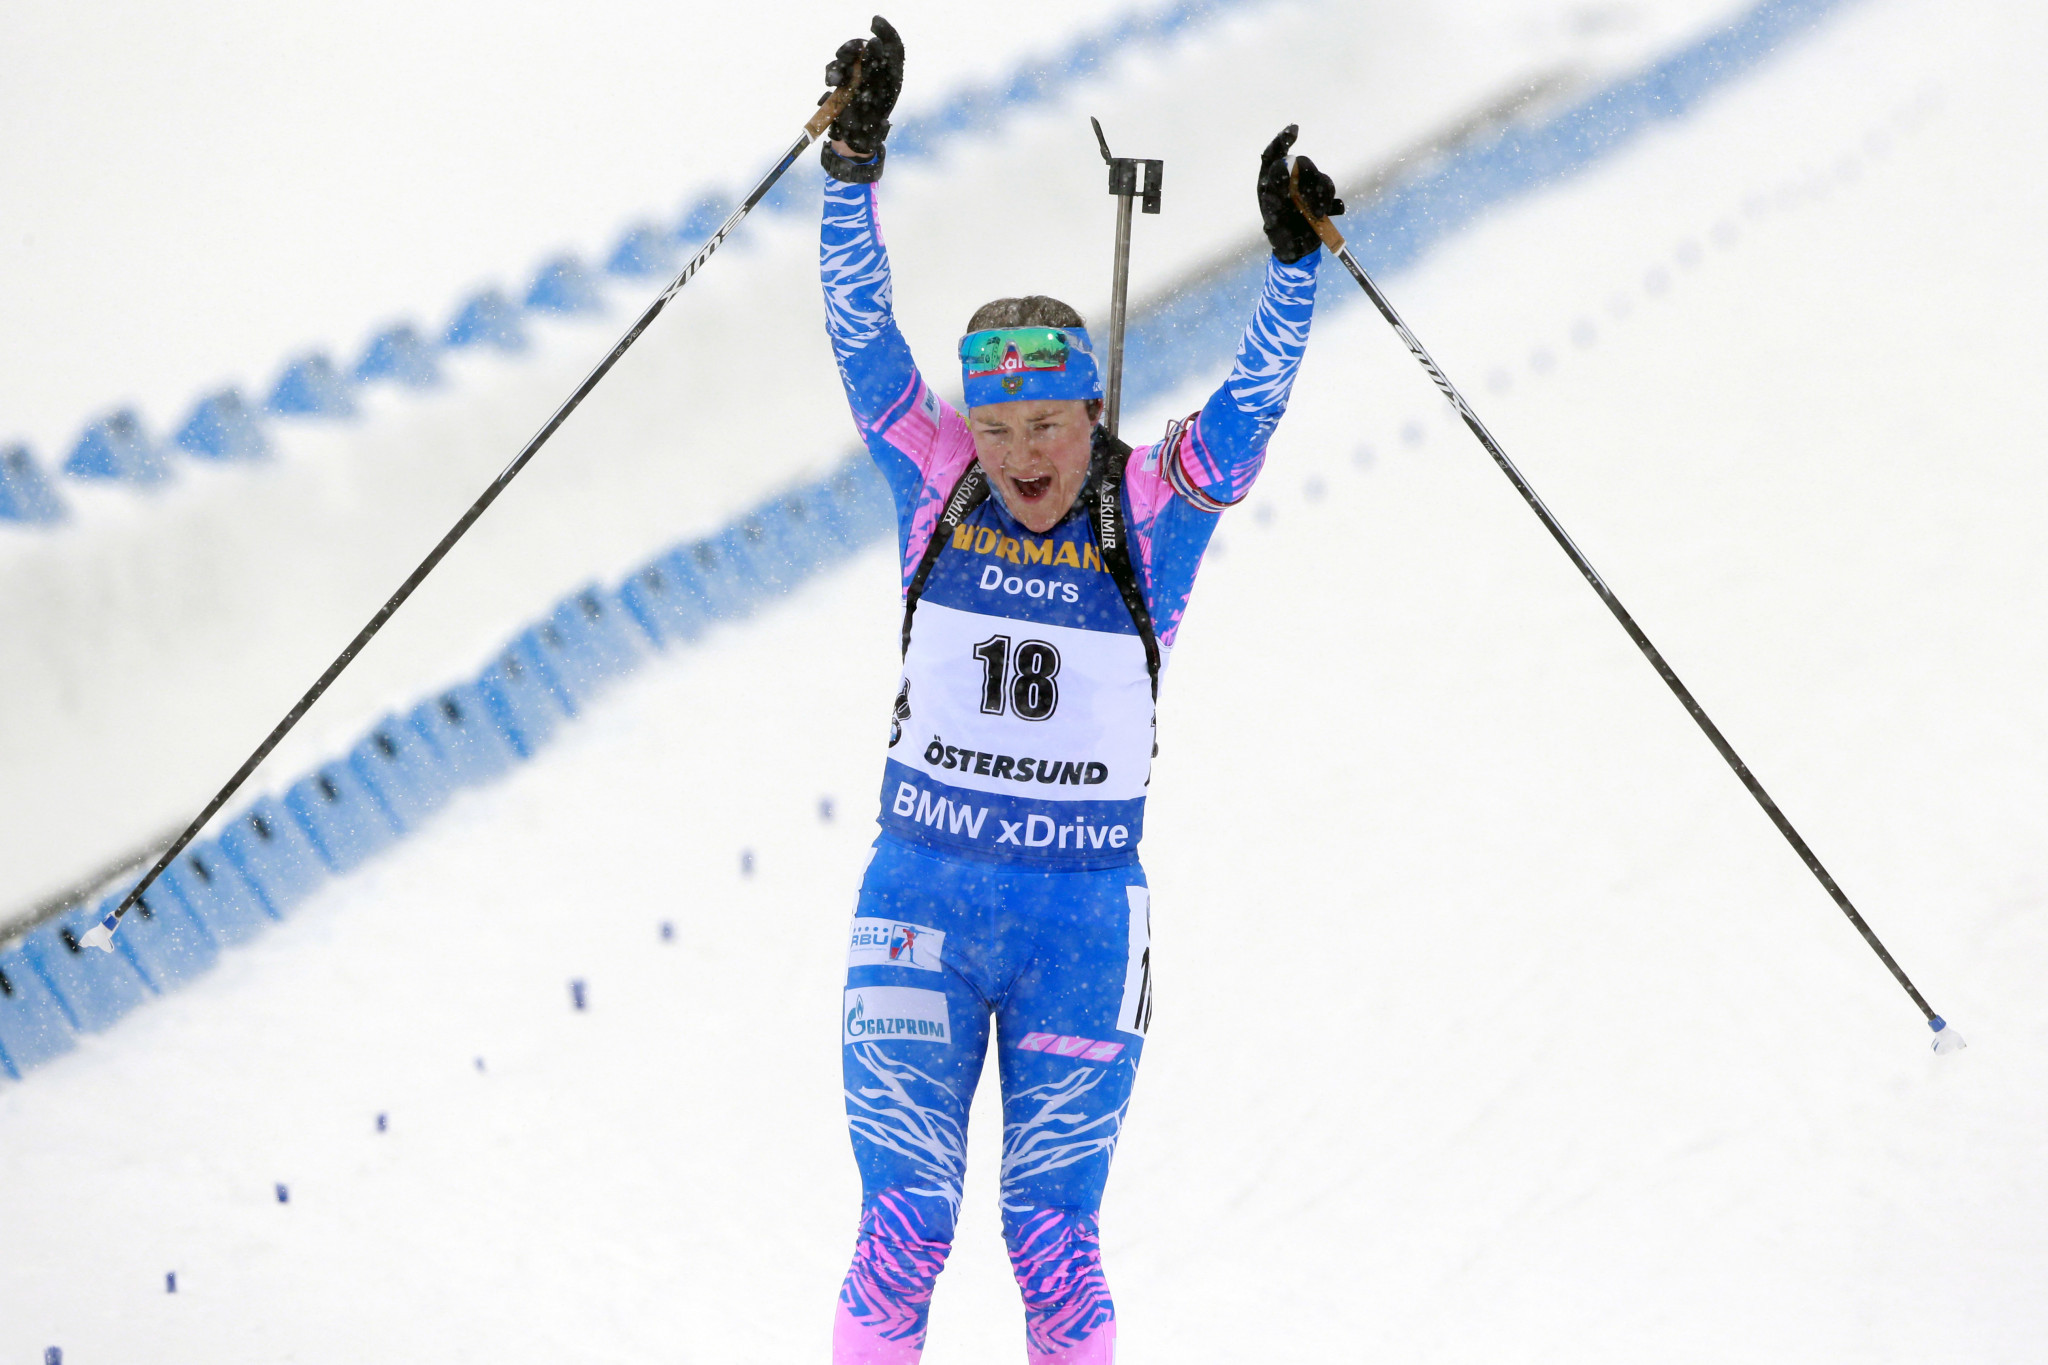 The Russian Biathlon Union reportedly thinks paying debts of around €60,000 (£51,500/$67,000) to the International Biathlon Union should be enough to regain full membership rights ©Getty Images